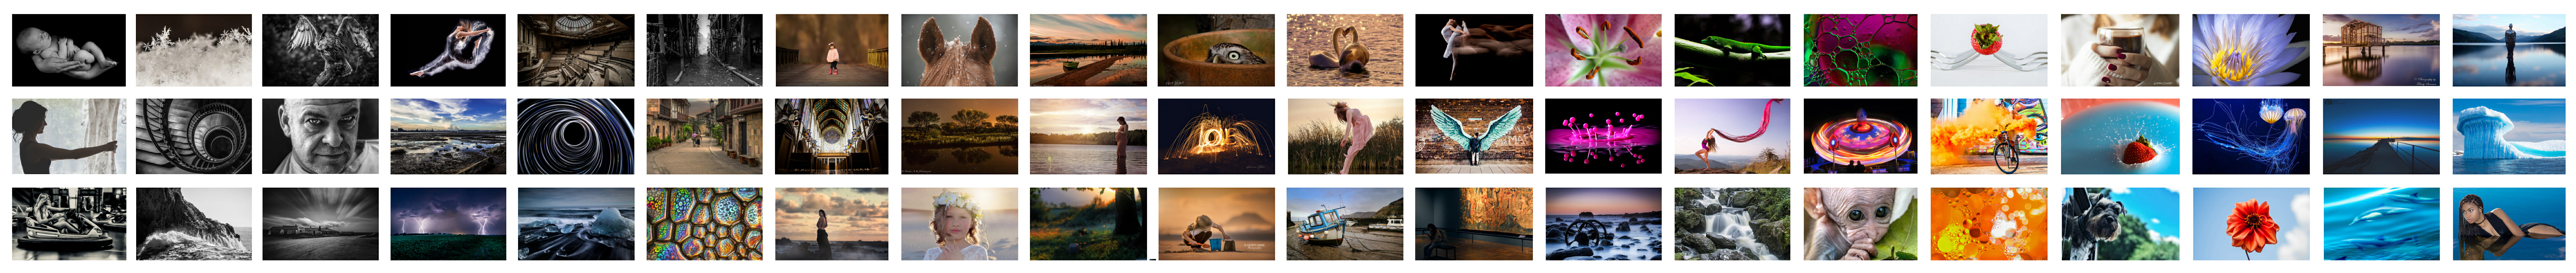 world photo day strip camera photography collection mosaic pictures iphotography